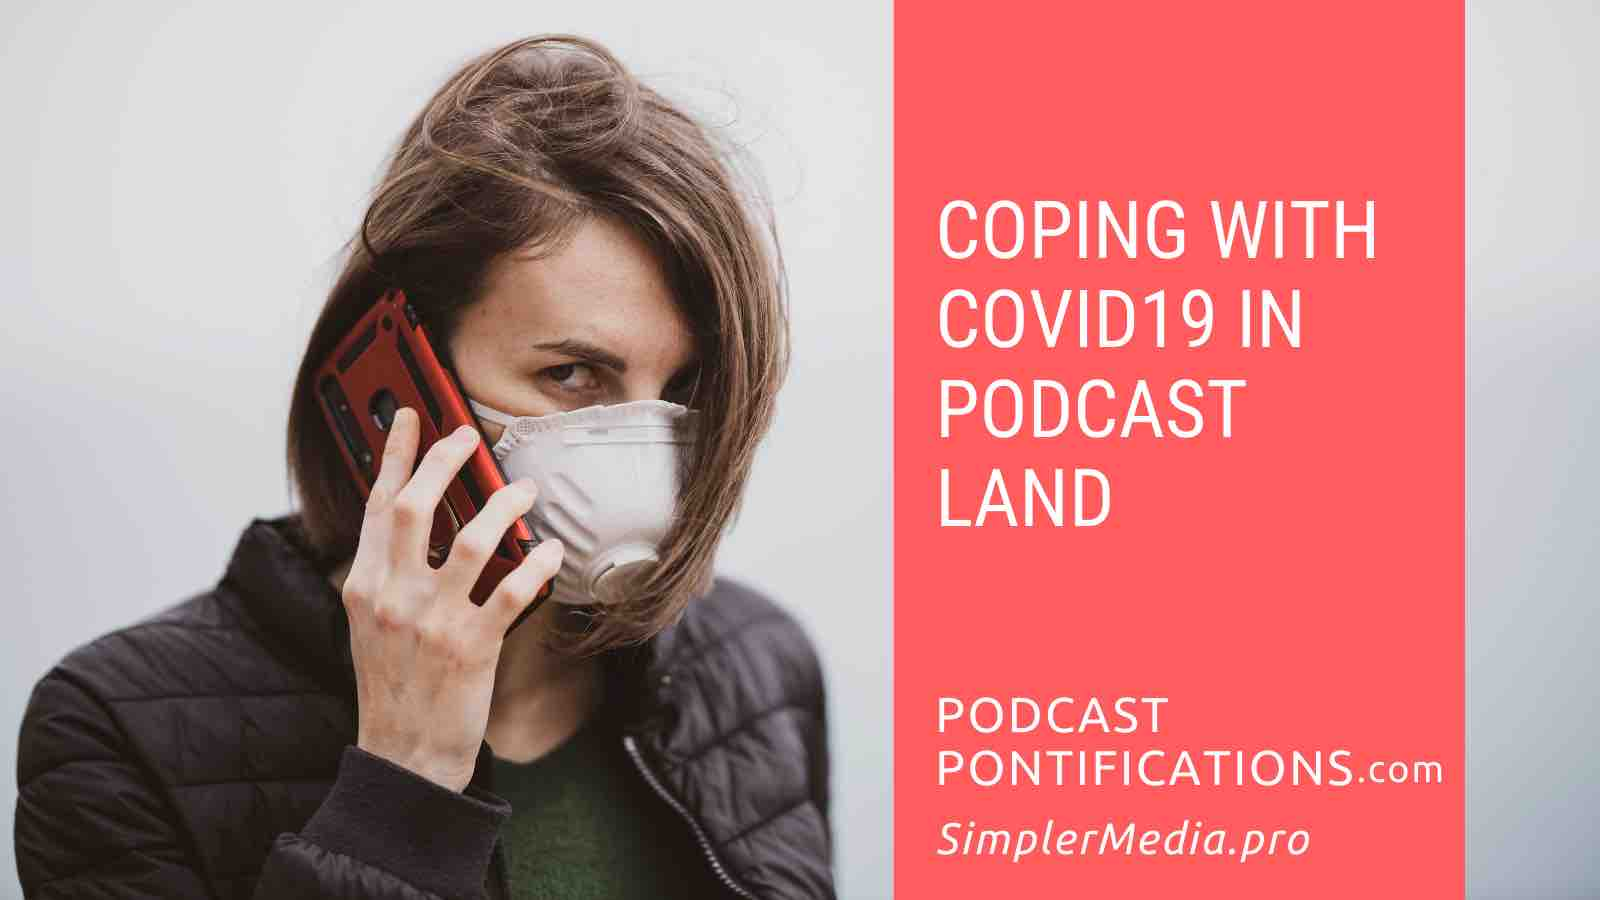 Coping With COVID19 In Podcast Land